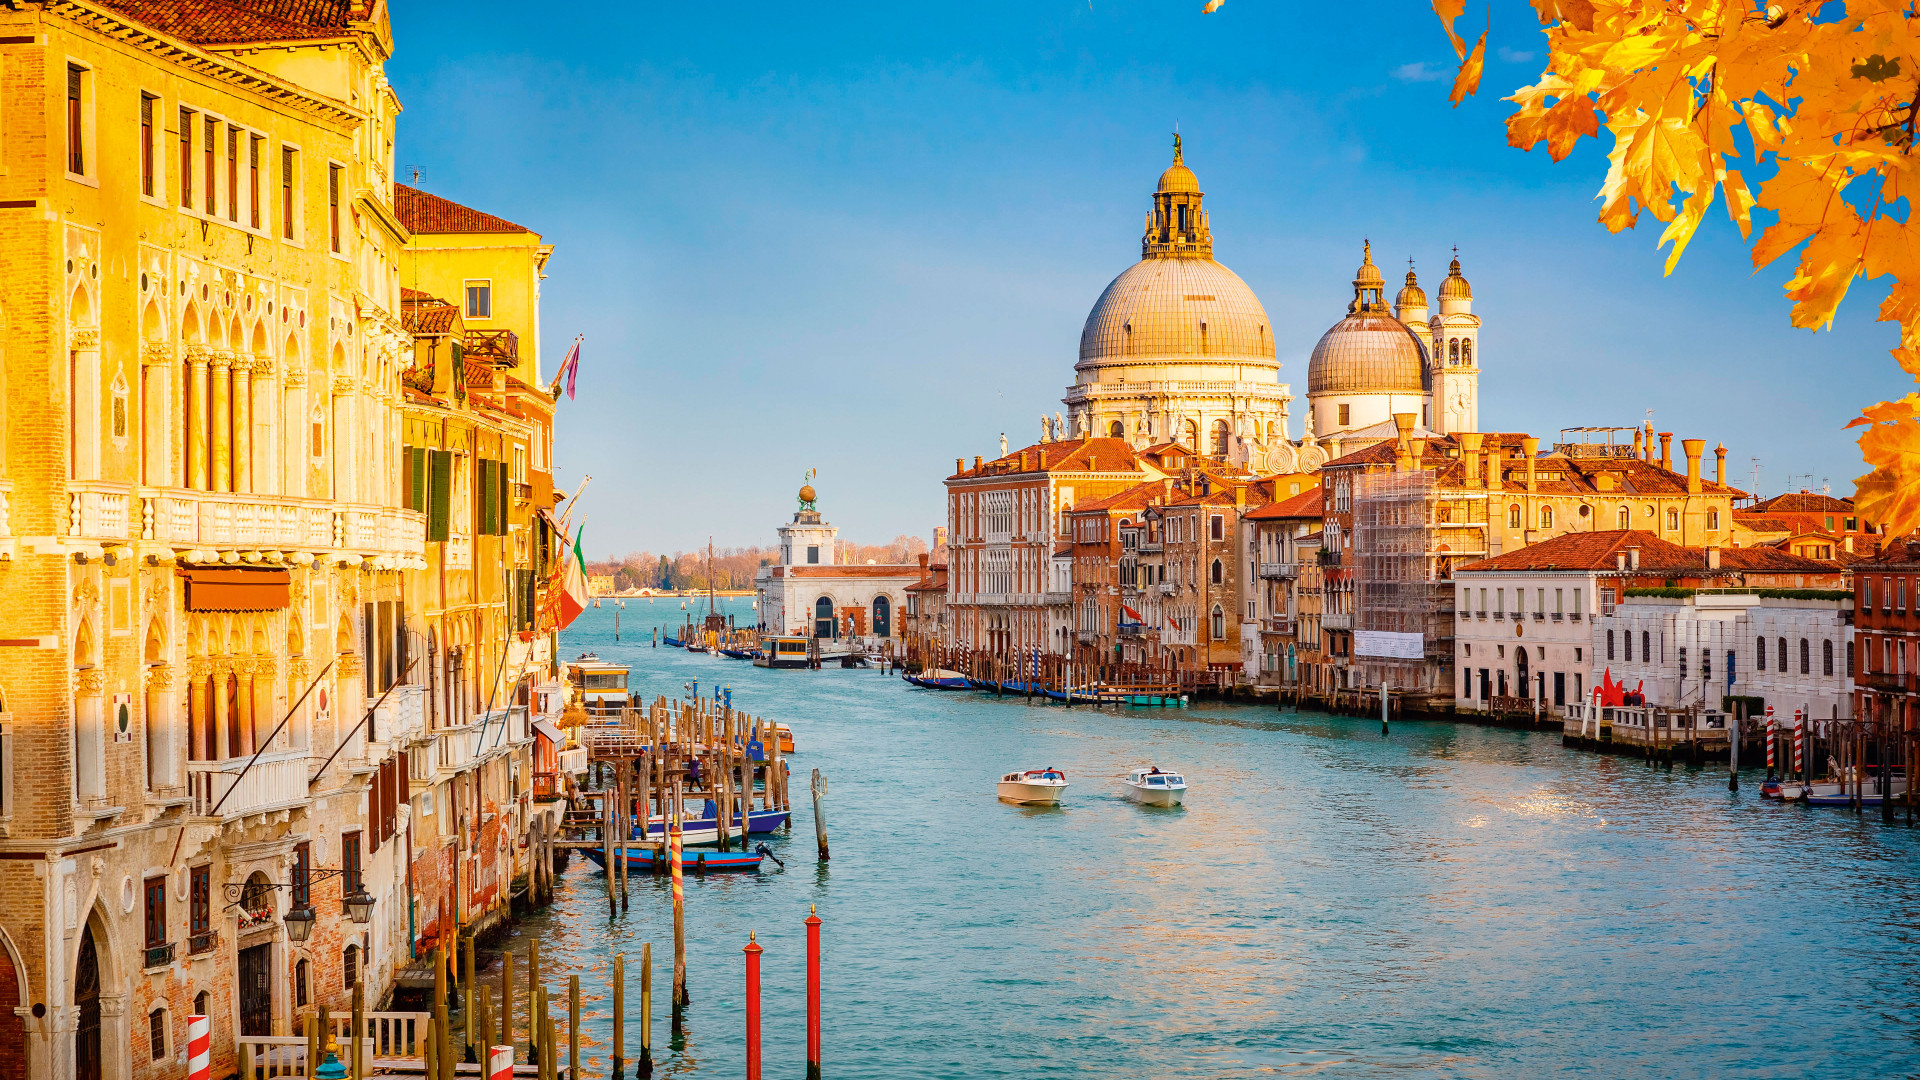 Autumnal view of the Grand Canal, Venice